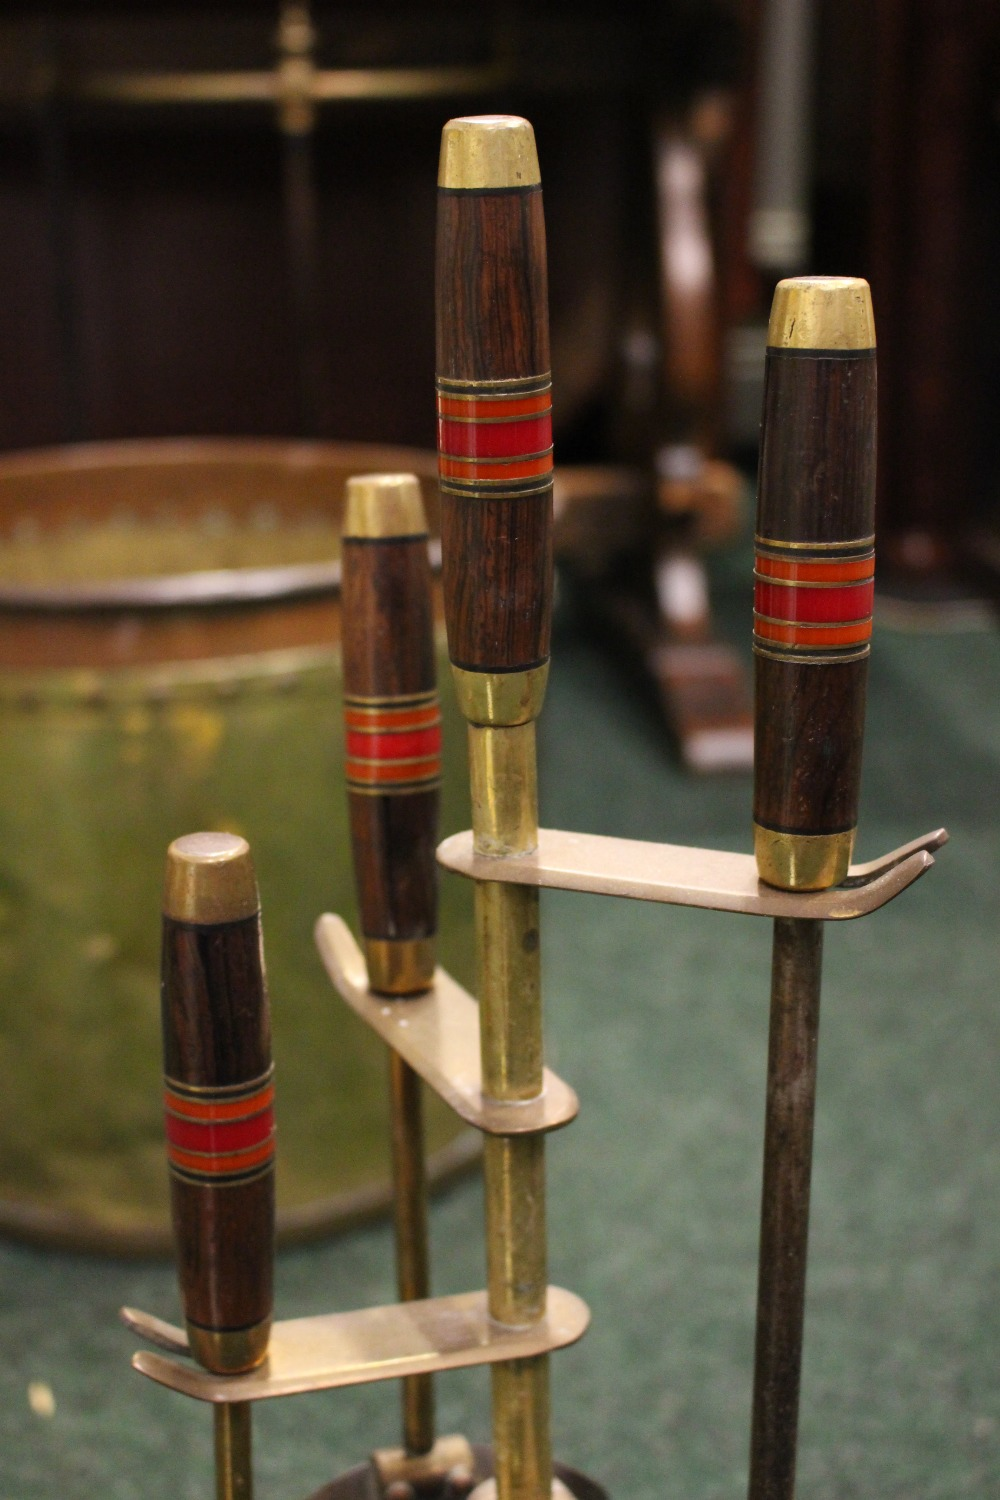 Lot 359 - A SET OF MID CENTURY MODERN STYLE BRASS FIRE IRONS, with wooden handles